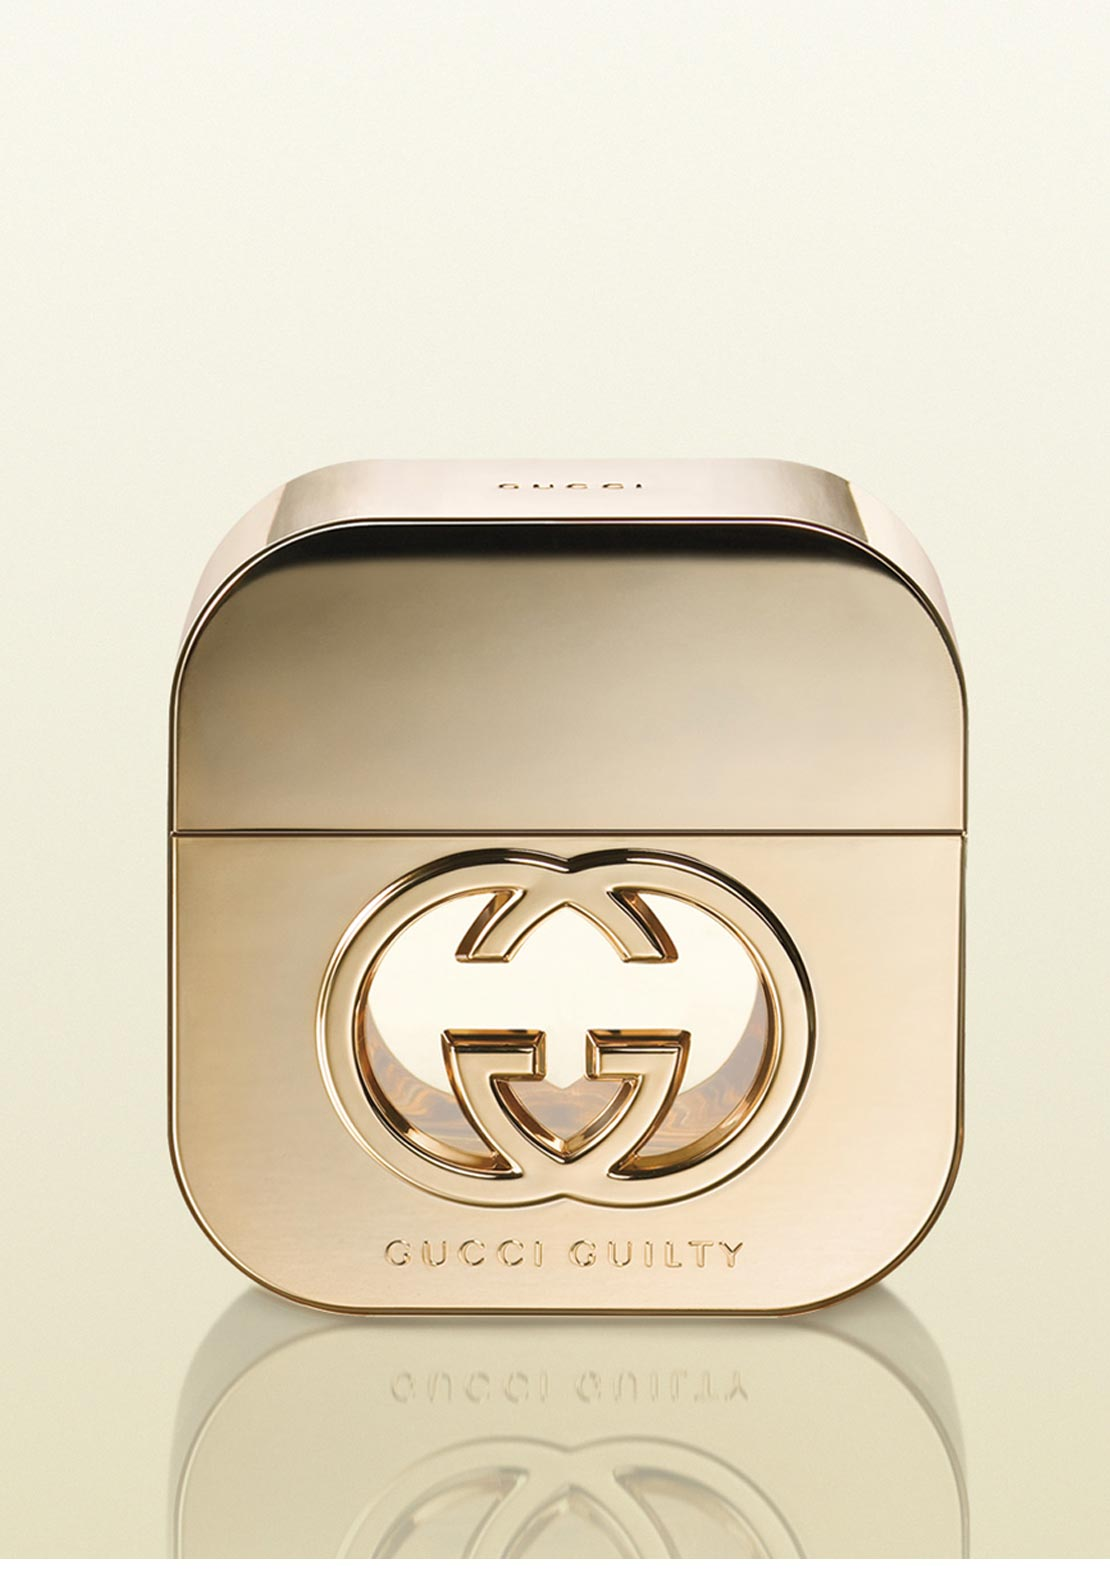 Gucci Guilty Eau de Toilette Vaporisateur Natural Spray, 50ml